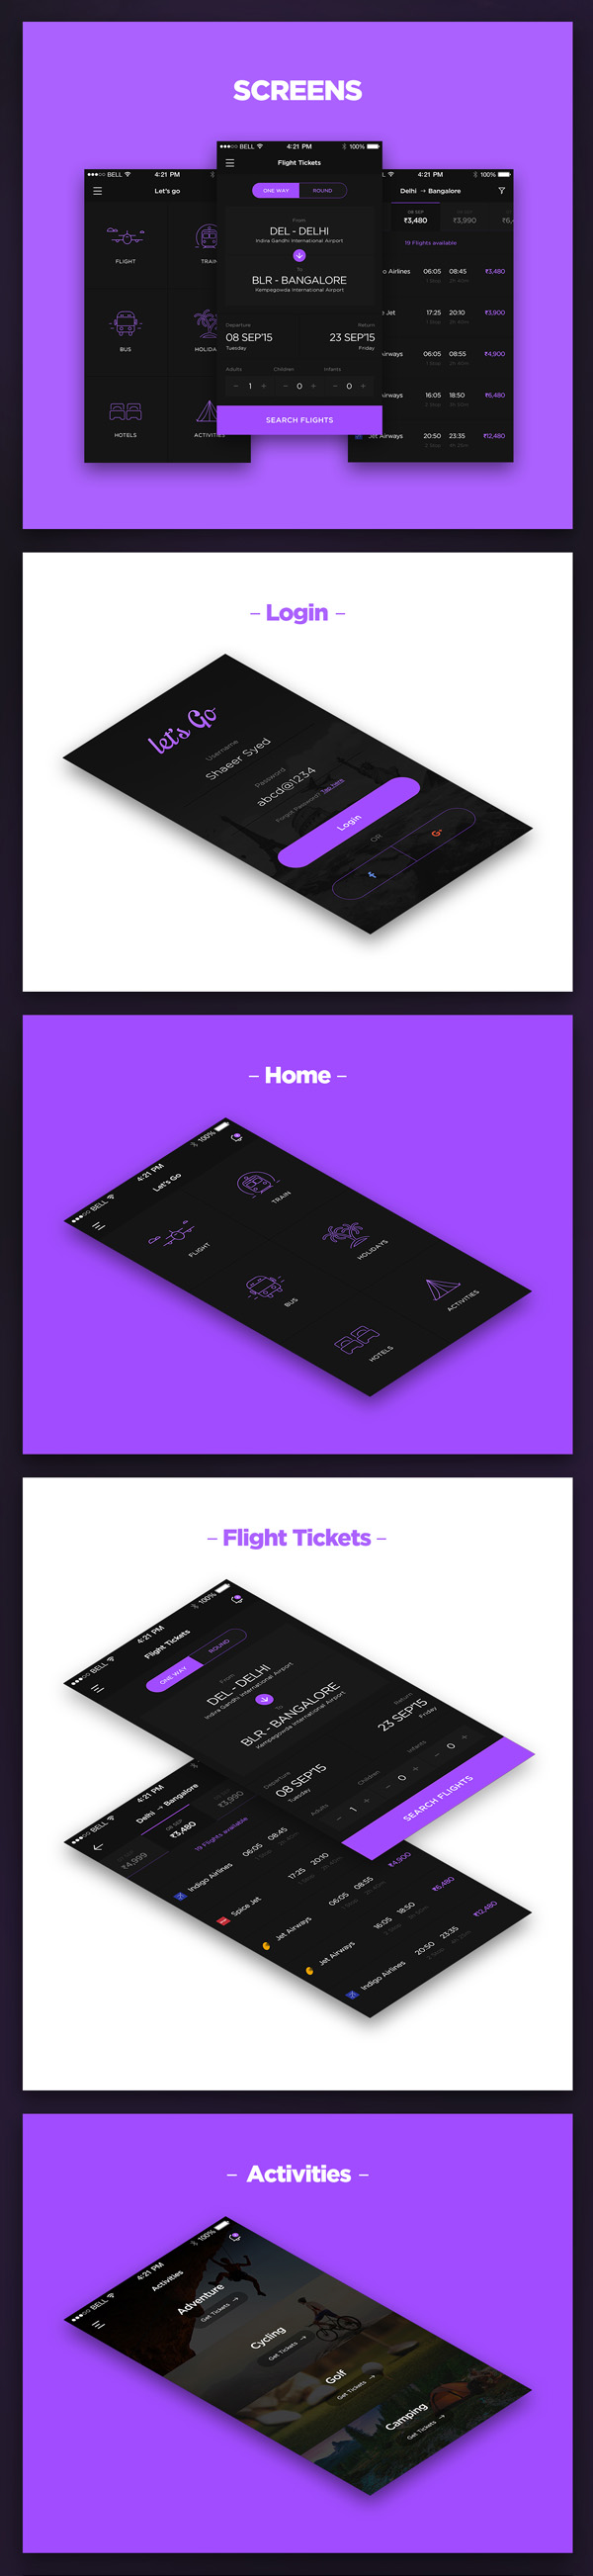 Travel App iOS Screens Free PSD Download